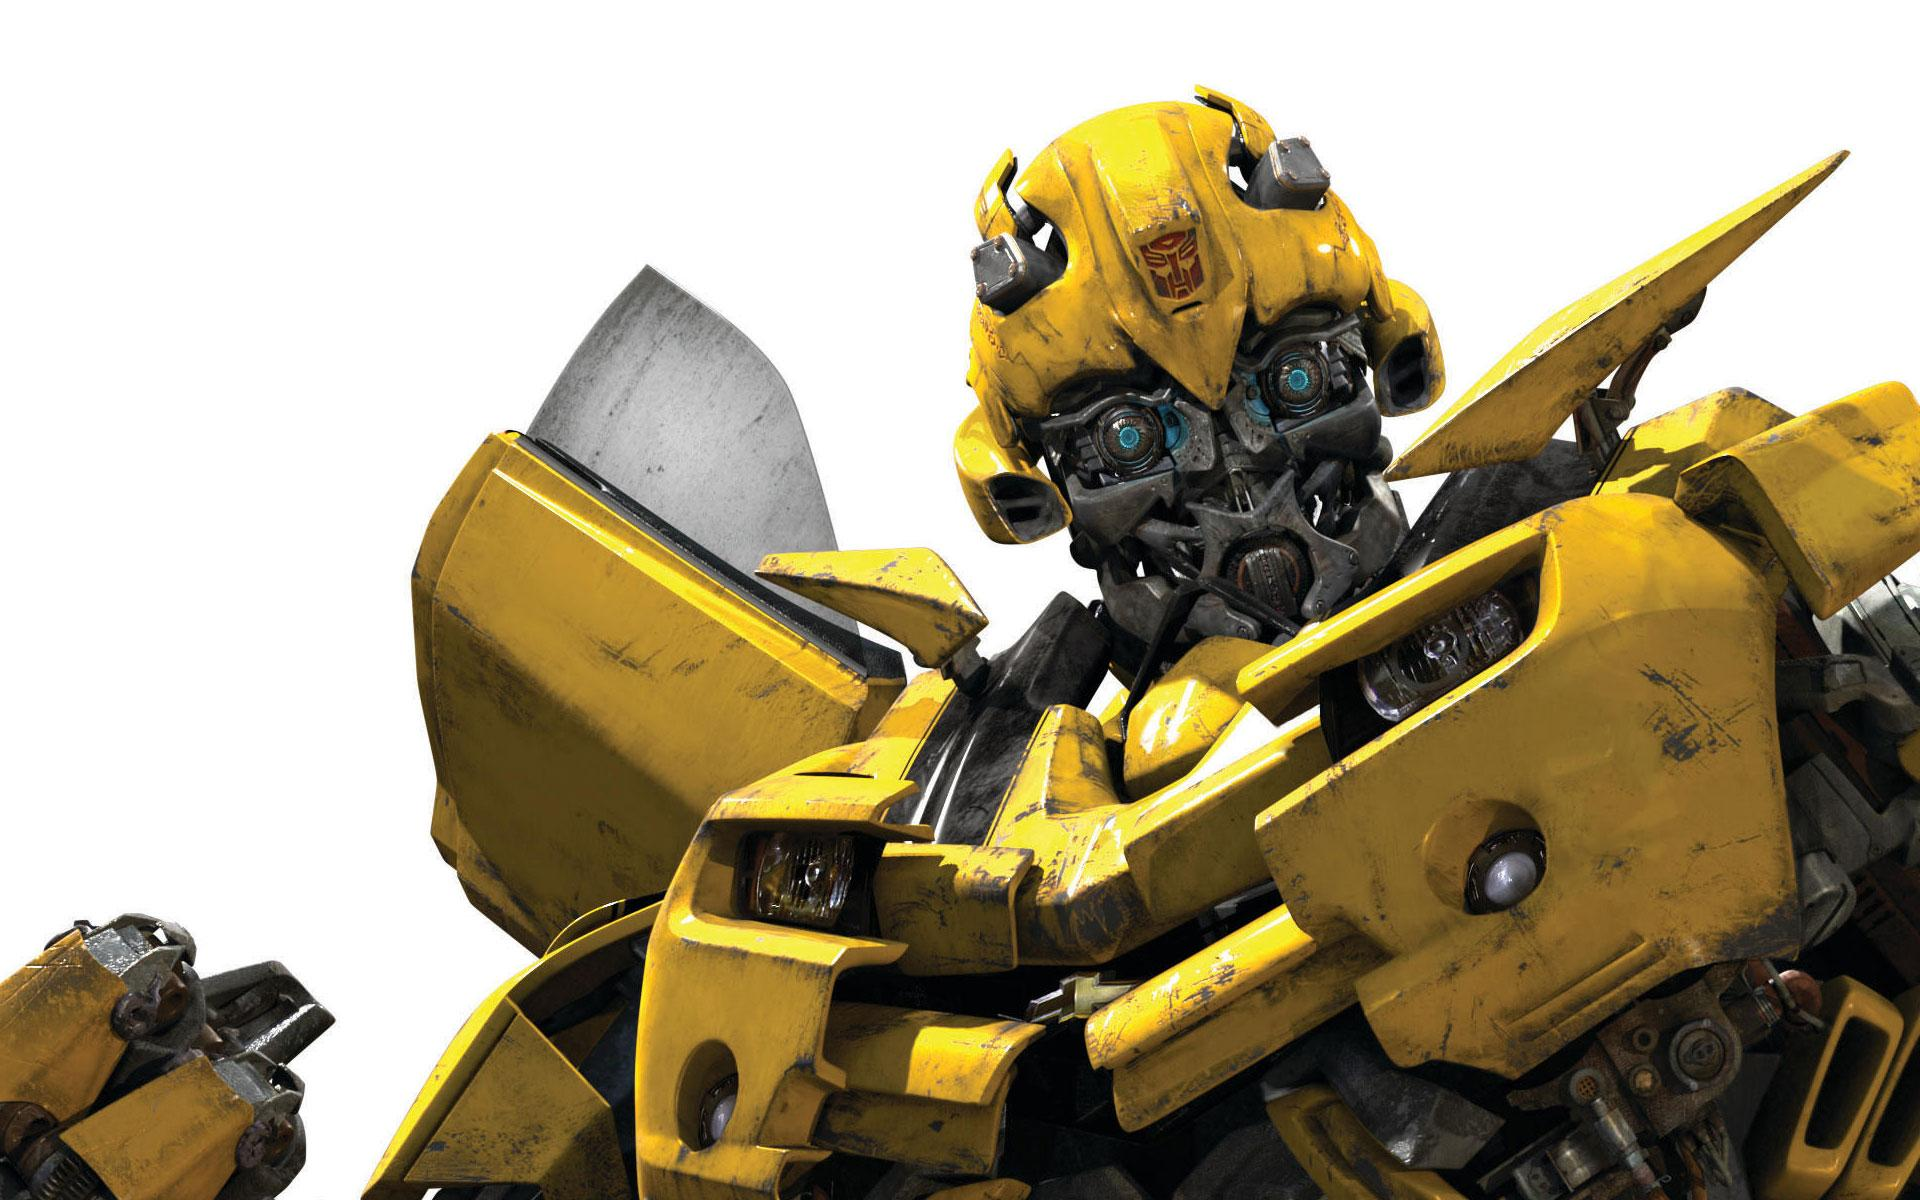 transformers-3-bumblebee-hd-wallpaper-free-download - movie marker